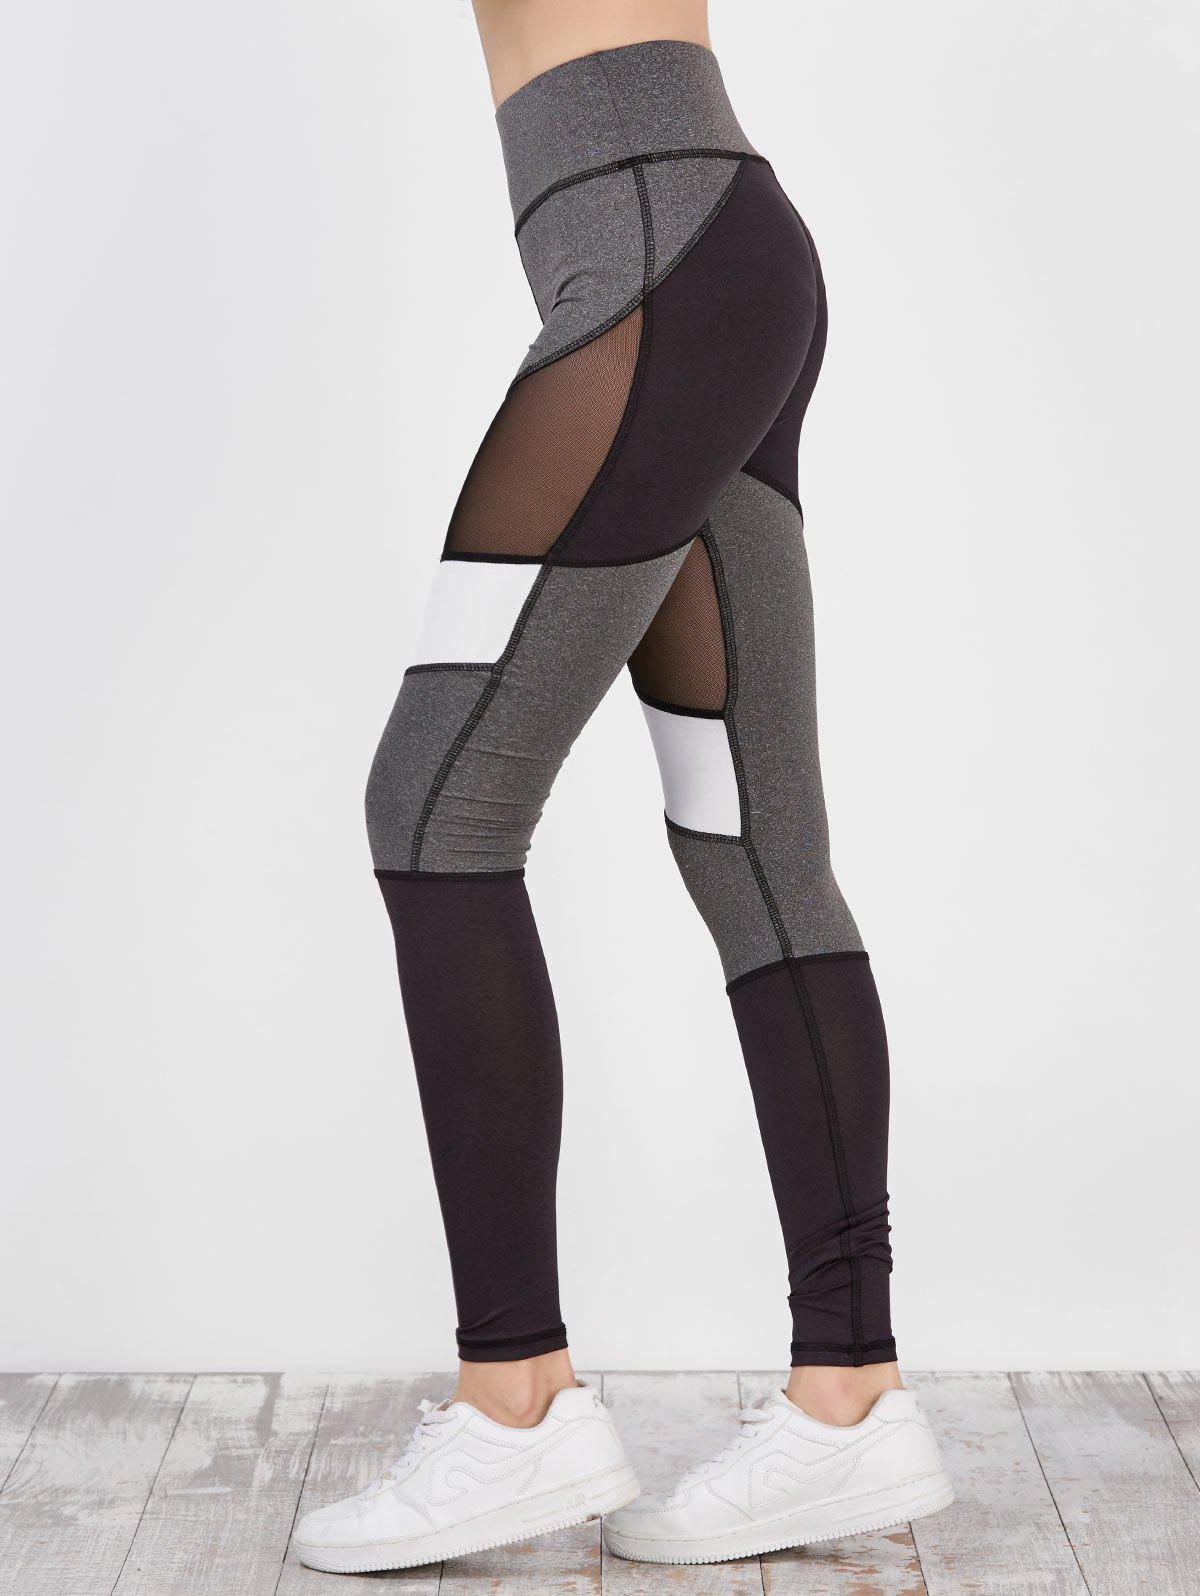 Colorblock Mesh Panel Workout Leggings - multicolor L